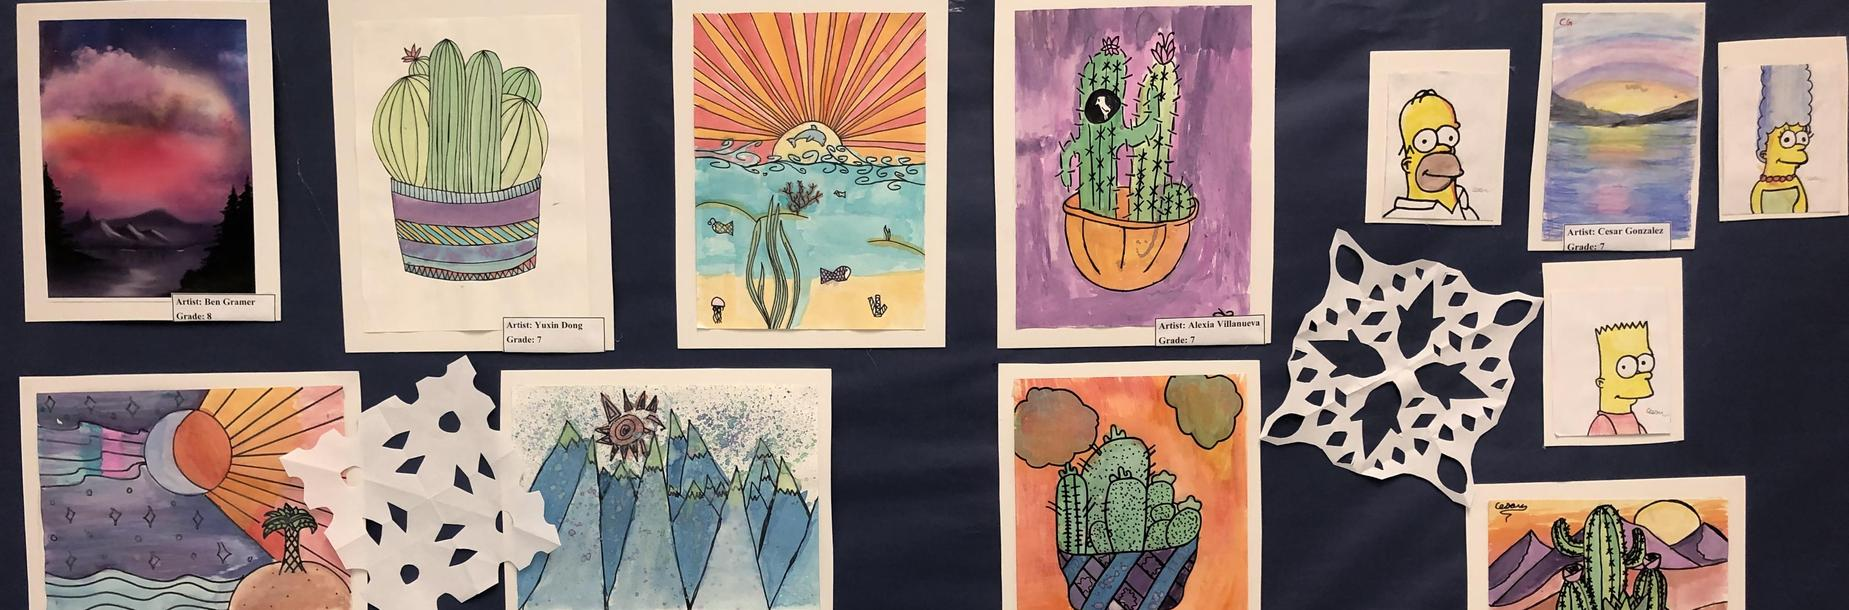 Art on Display at The Winter Fine Arts Program!